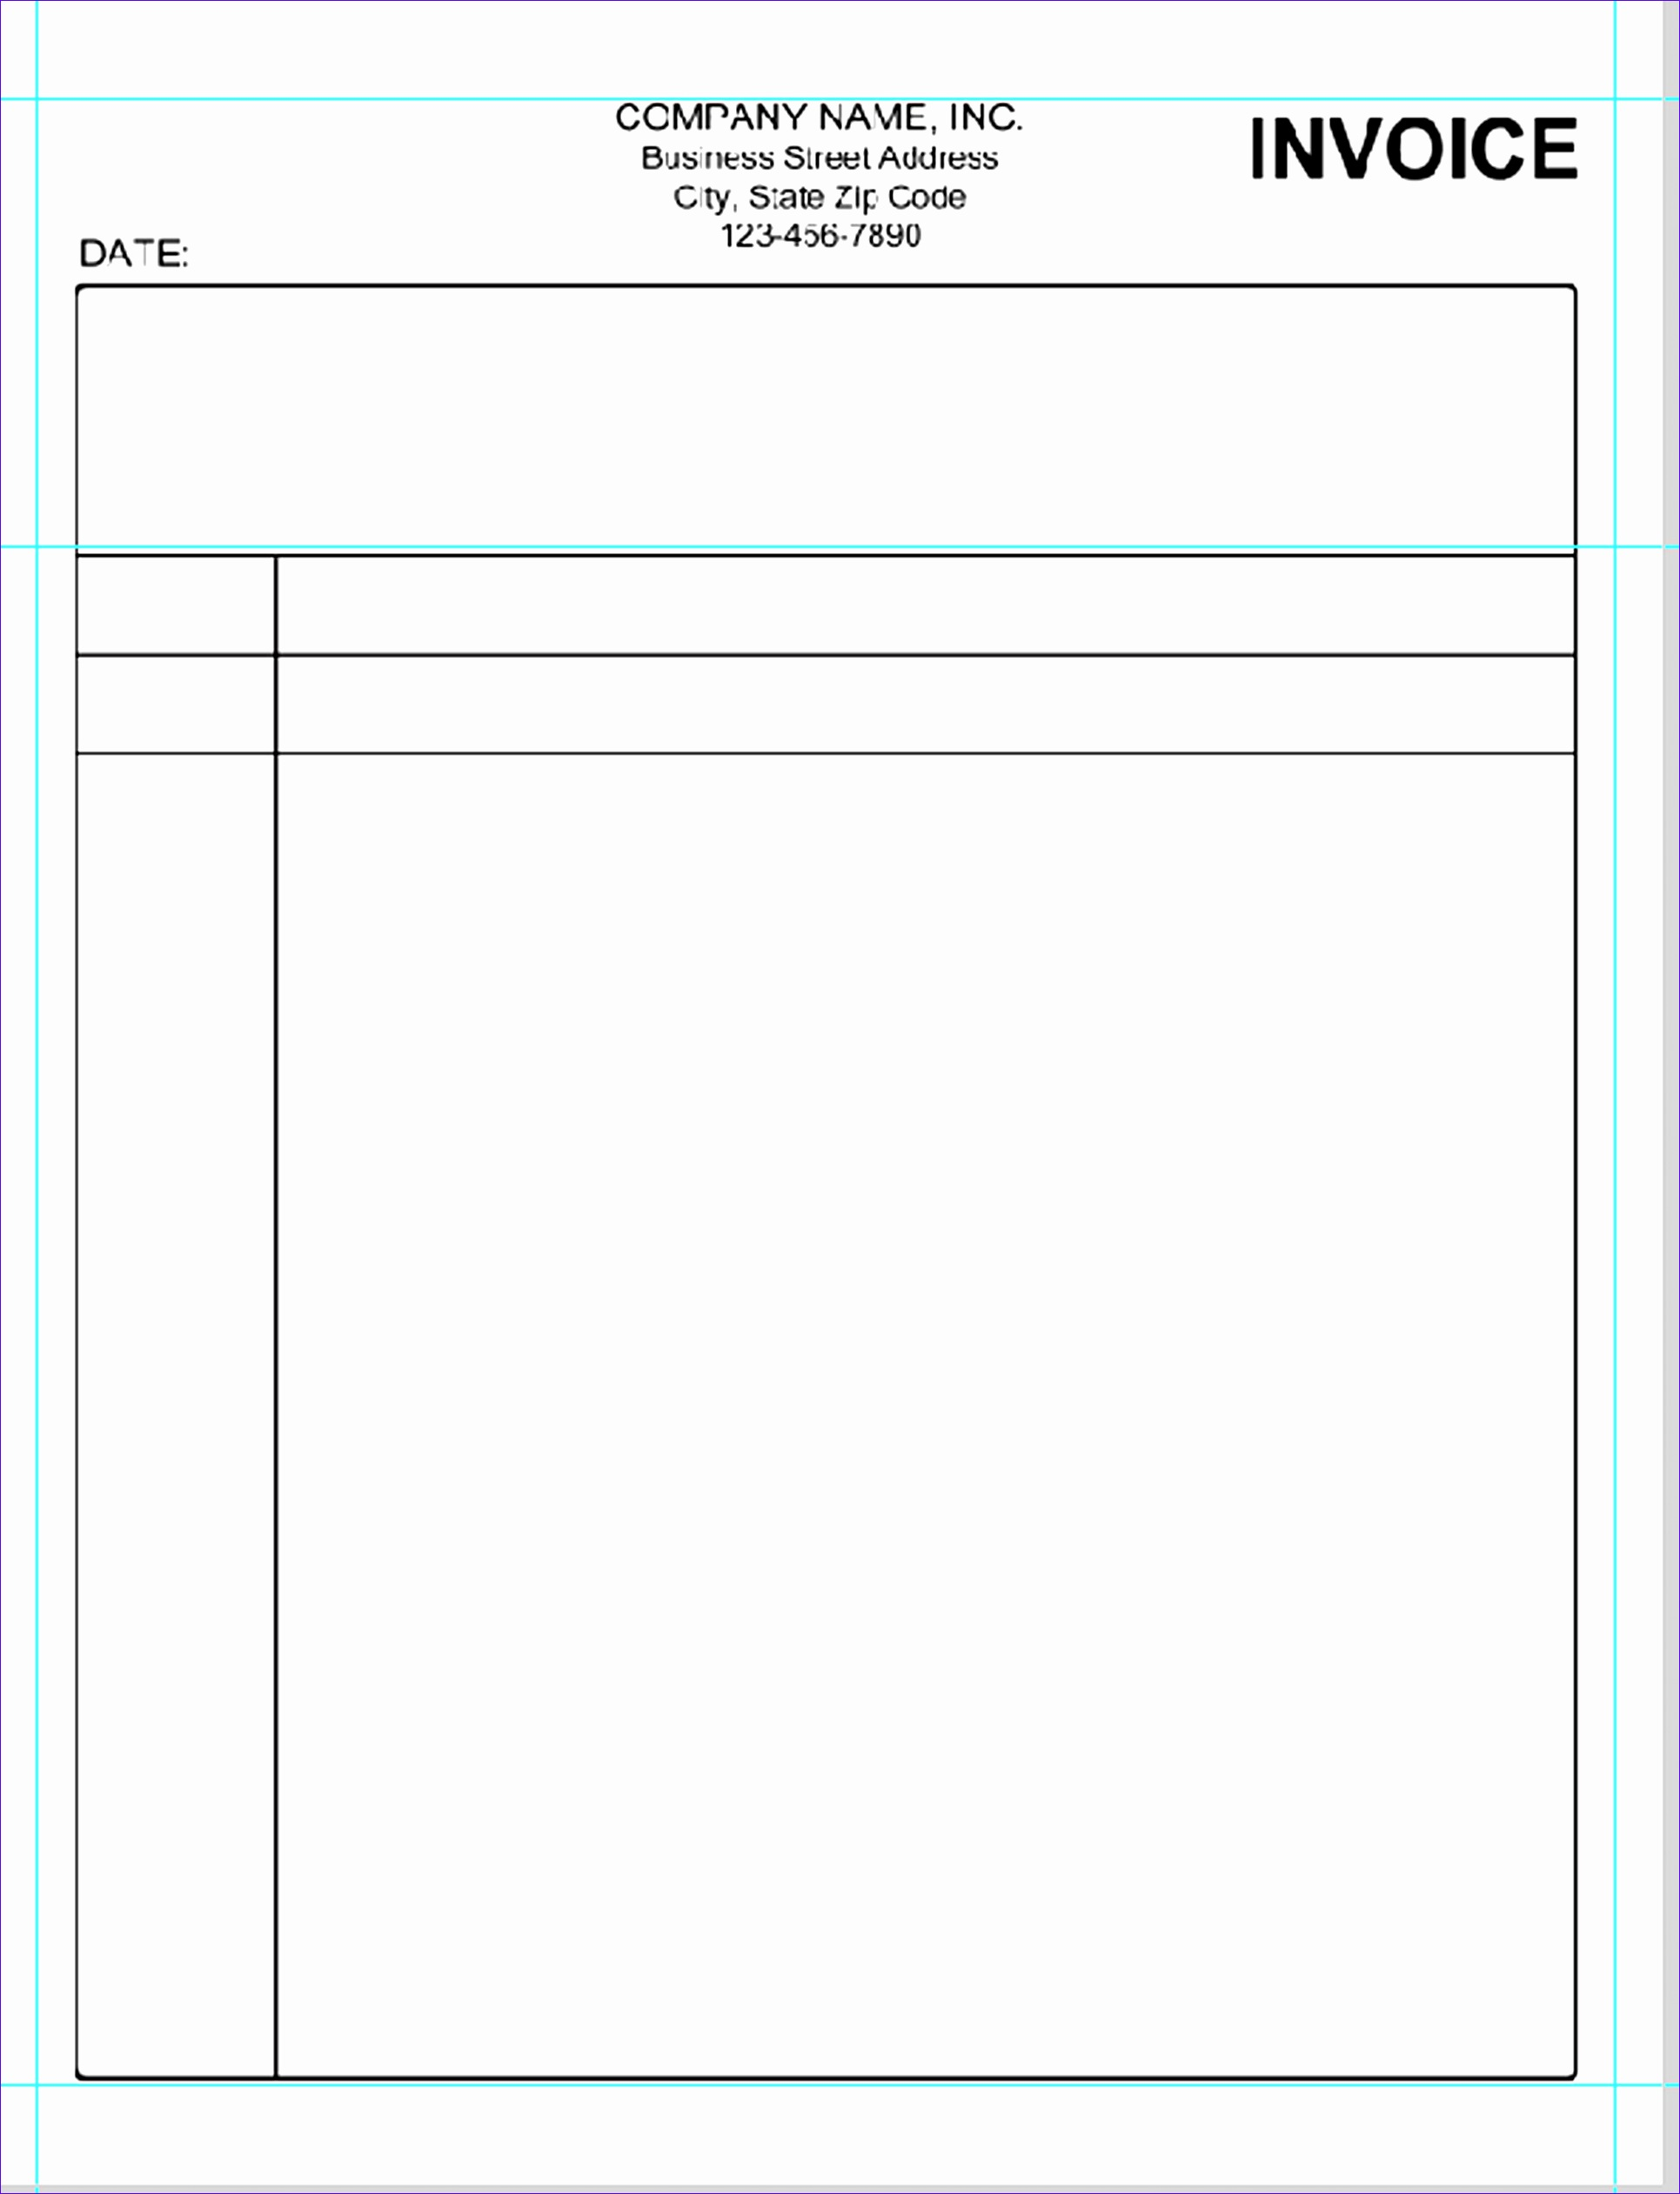 simple invoice template pdf 1880 19312522